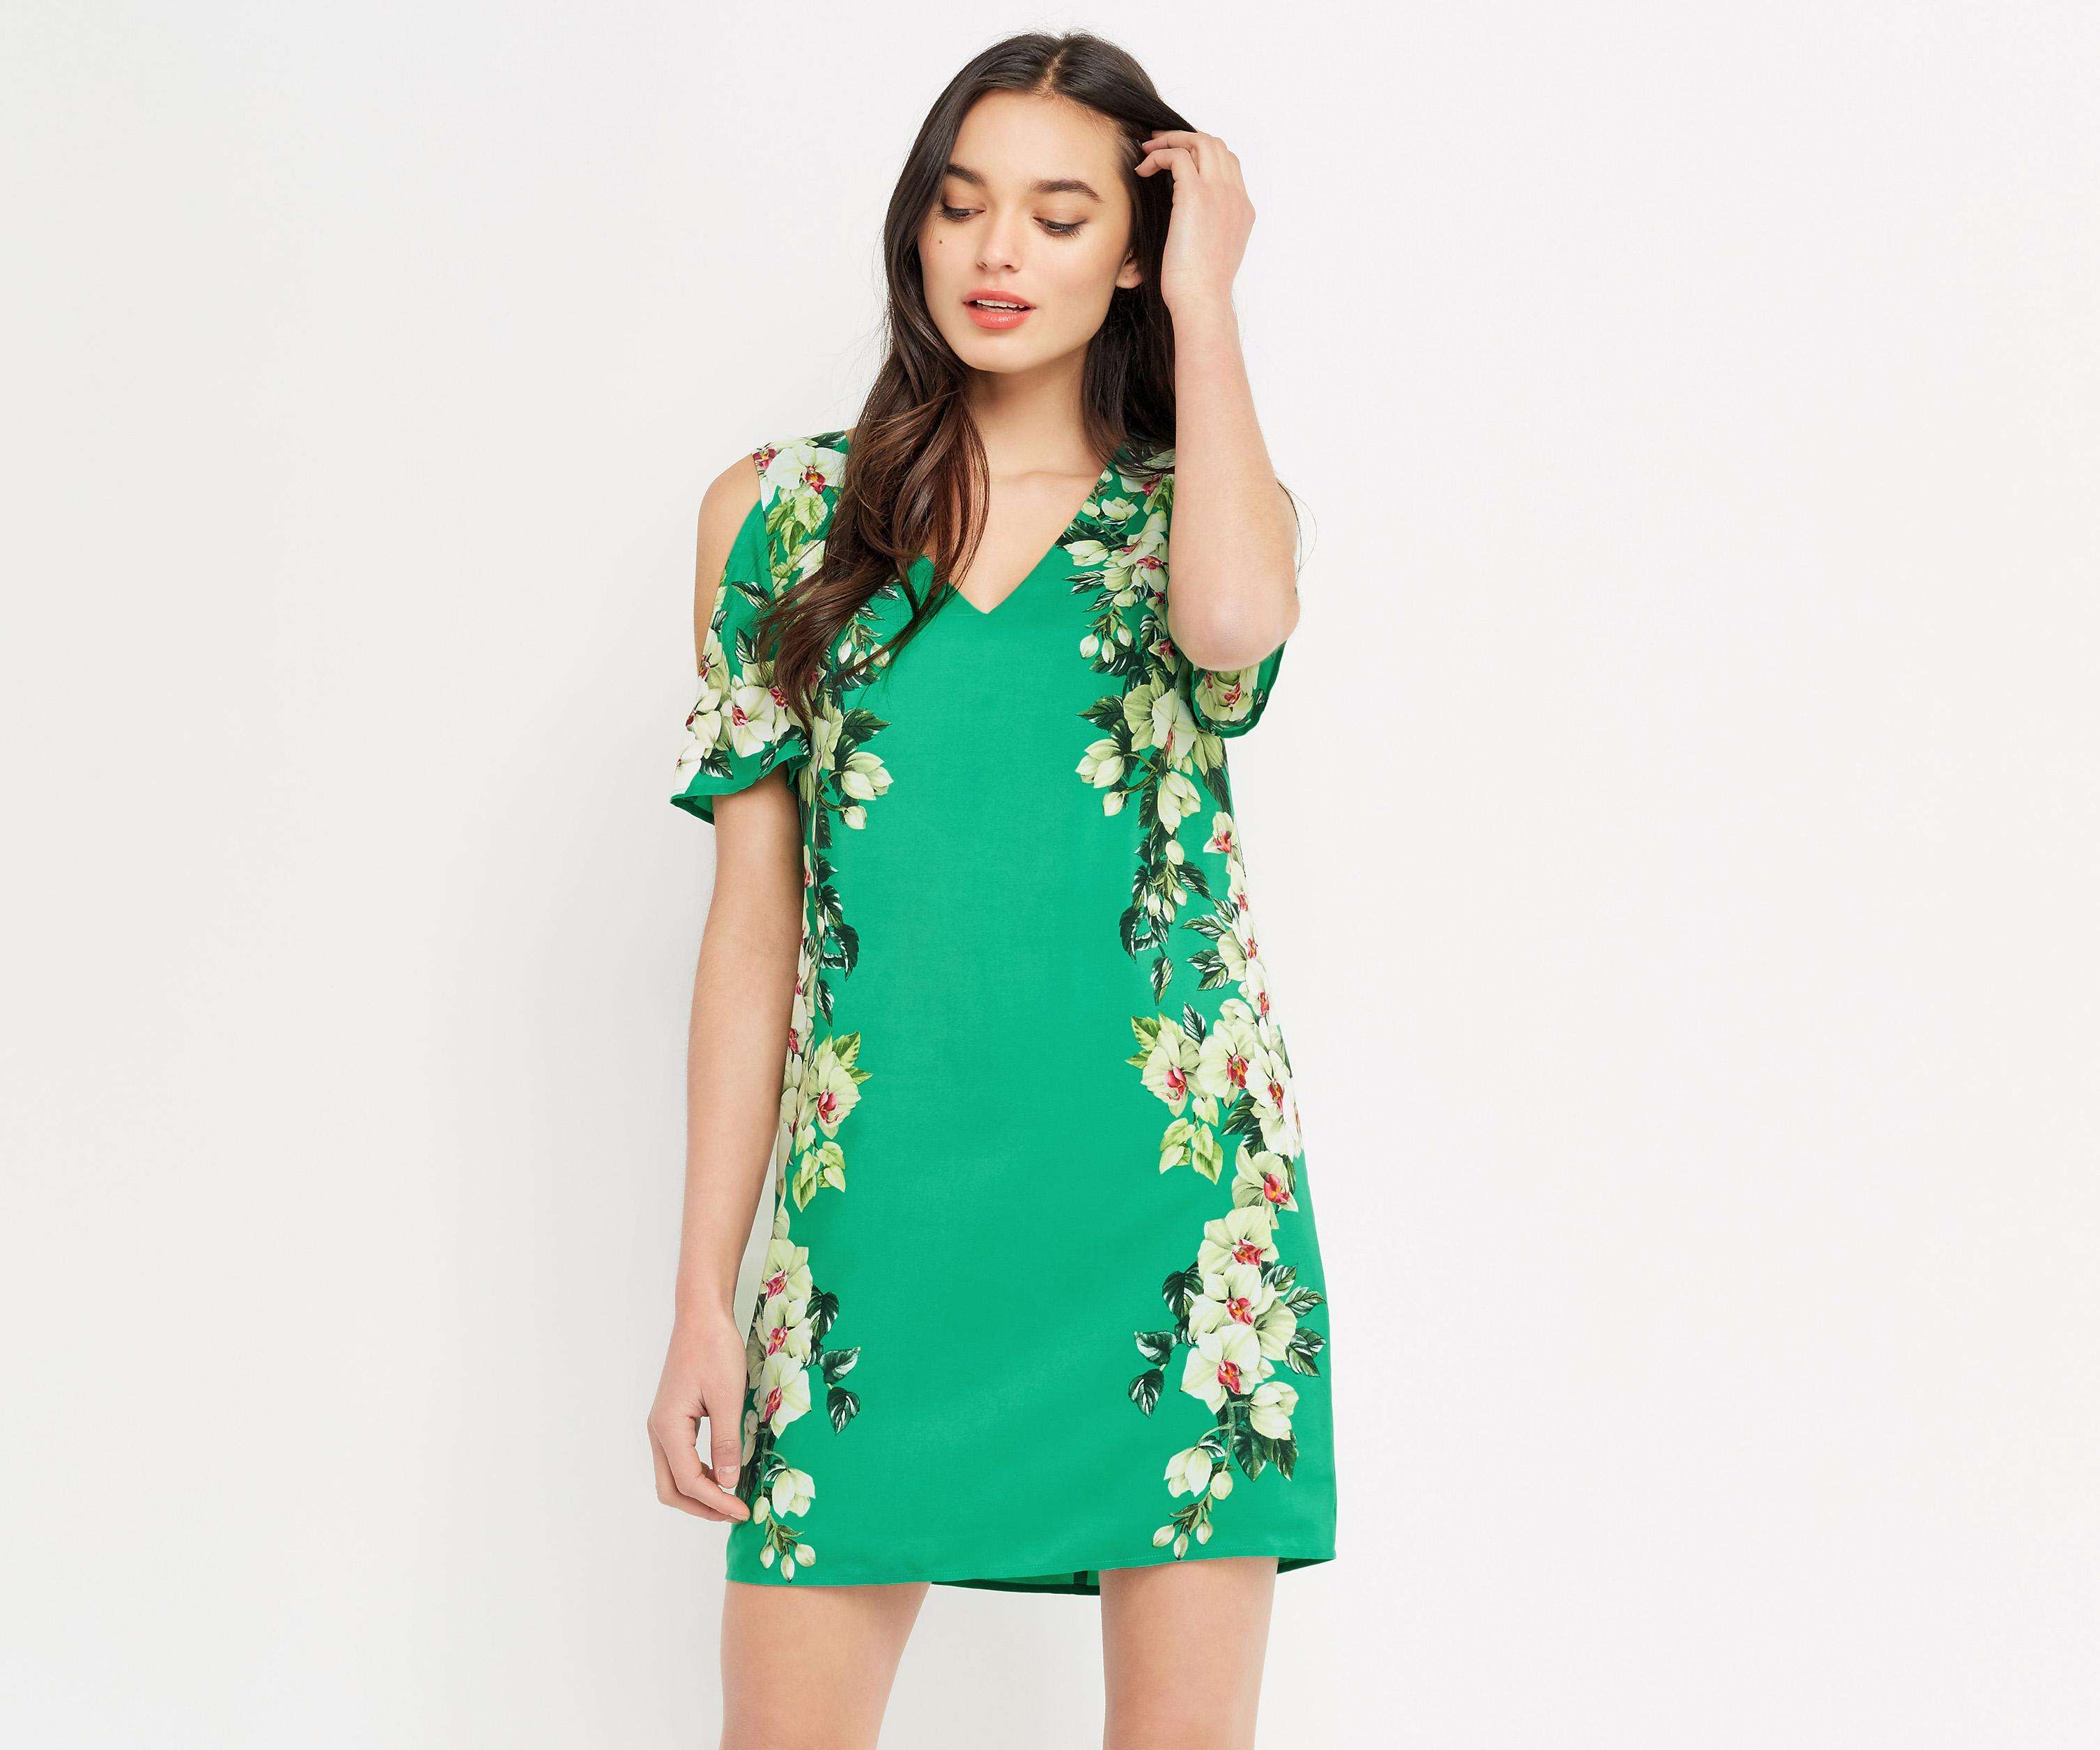 Lyst - Oasis Tropical Cold Shoulder Dress in Green